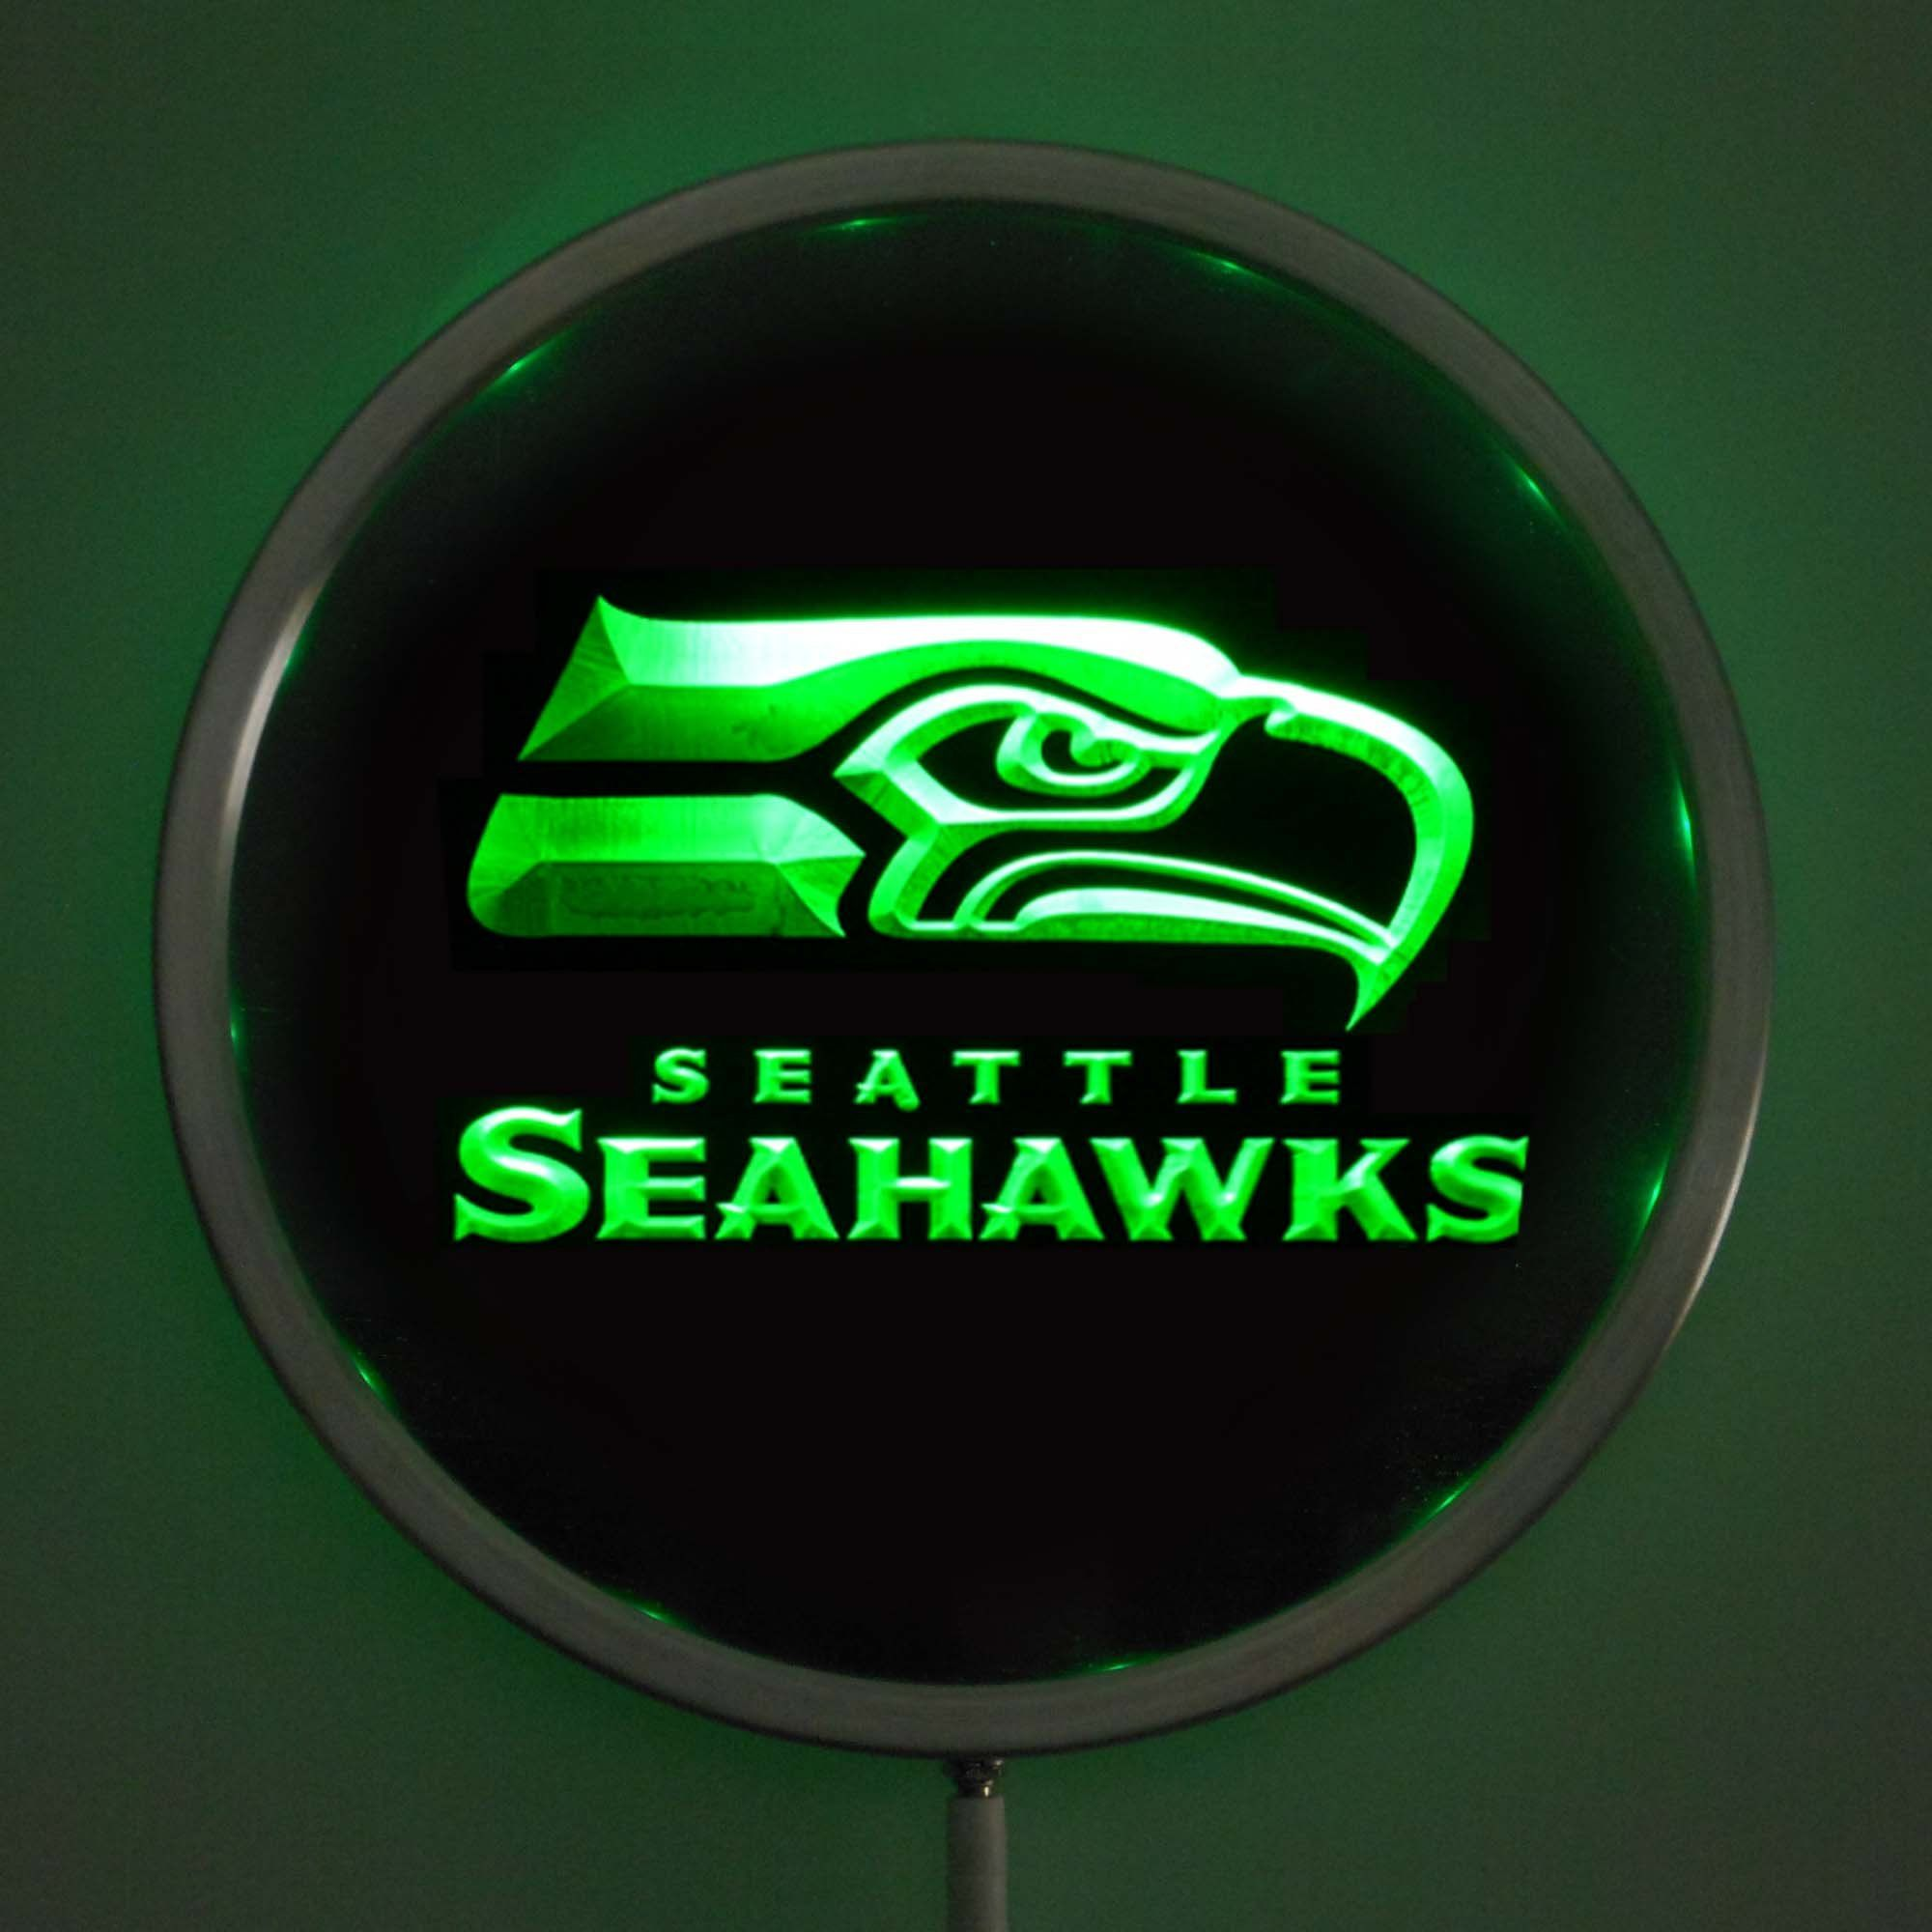 Seattle Seahawks LED Neon Round Sign in 2020 Seattle